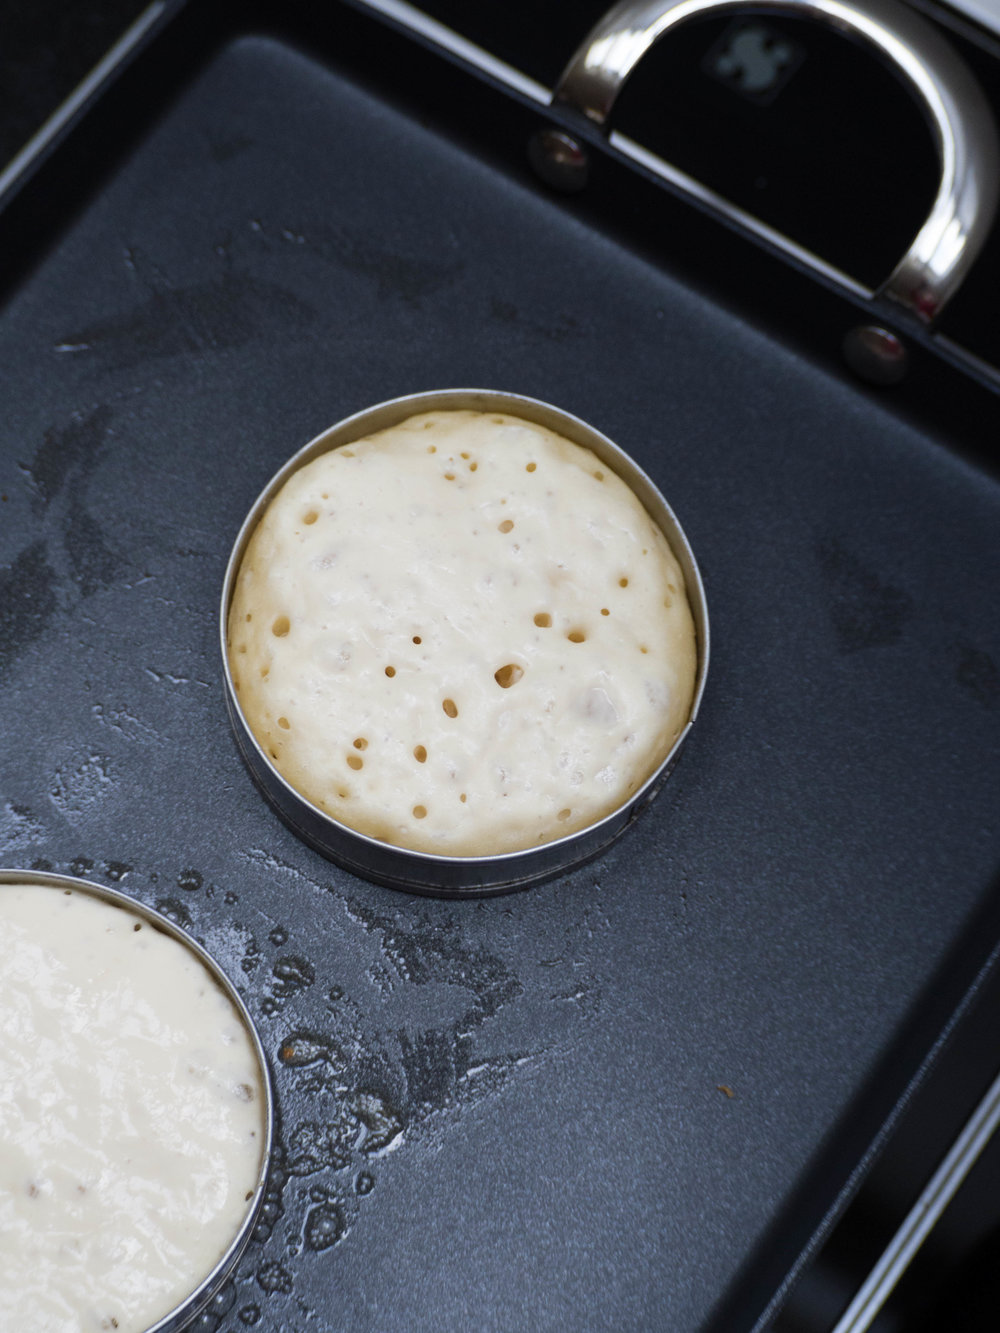 Cook crumpets on low heat in a crumpet ring until bubbles then holes appear, then flip